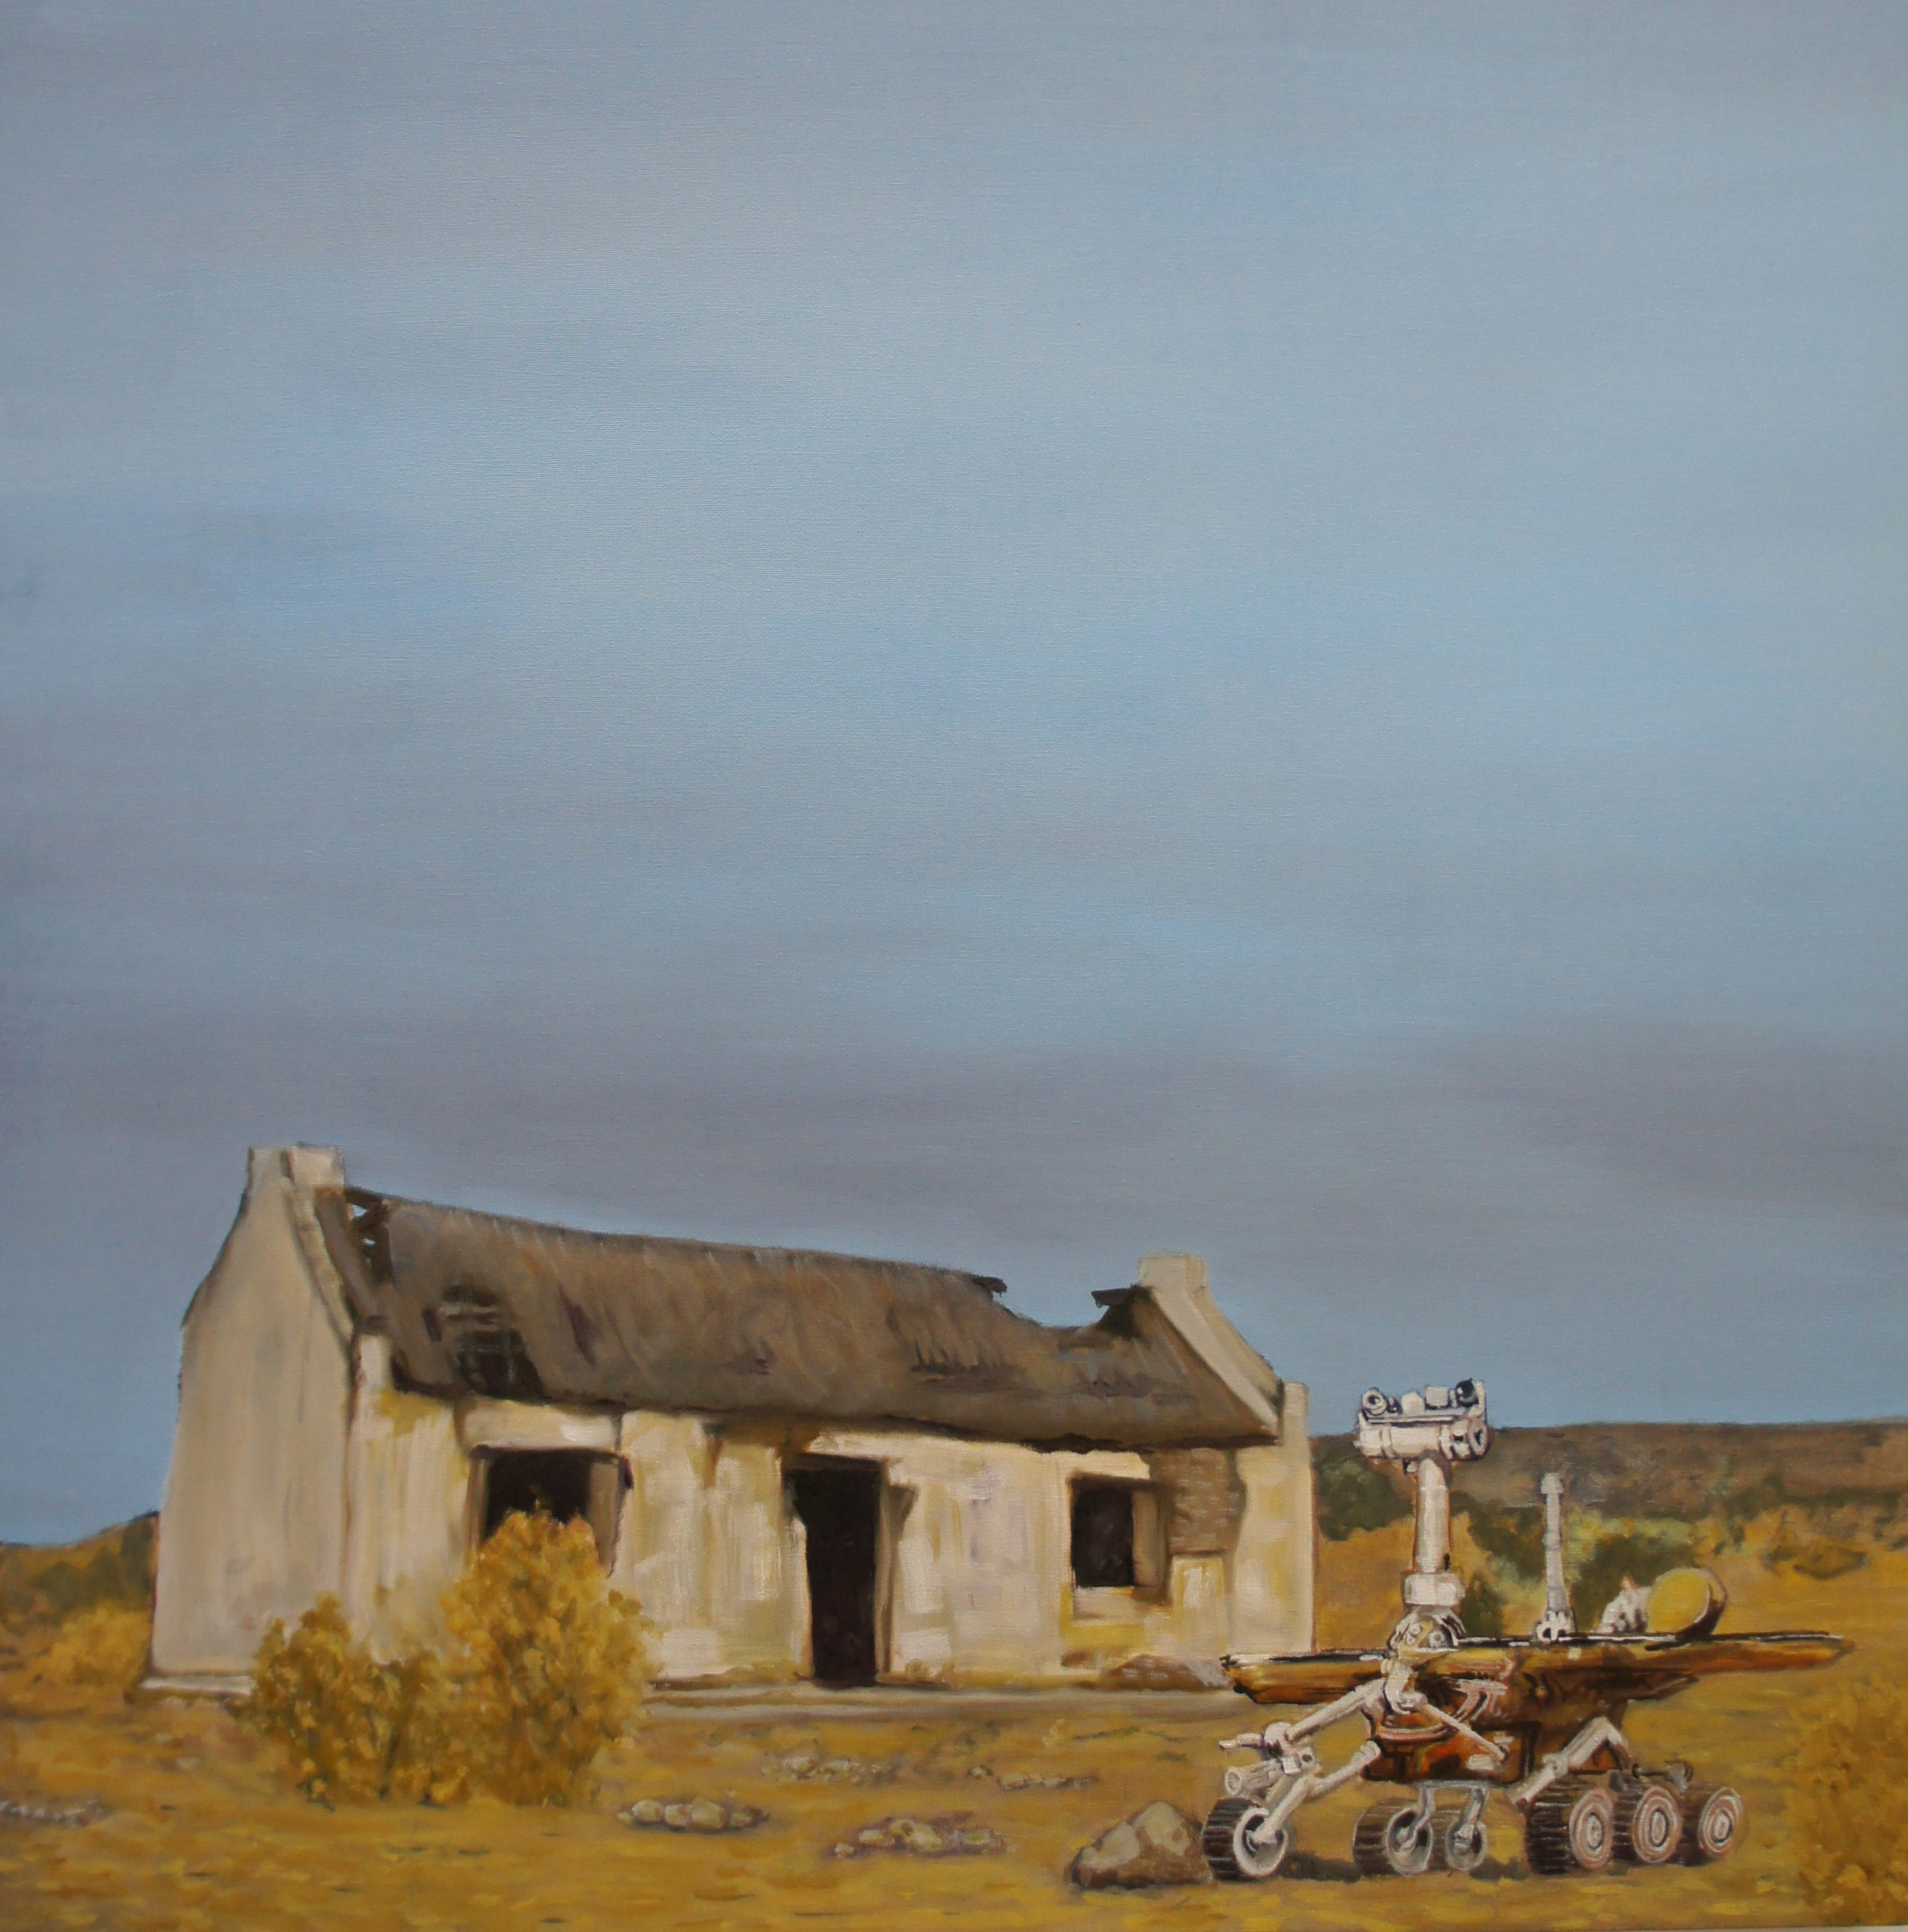 a painting of a lone barn with hole in roof in and a robot on wheels in the foreground